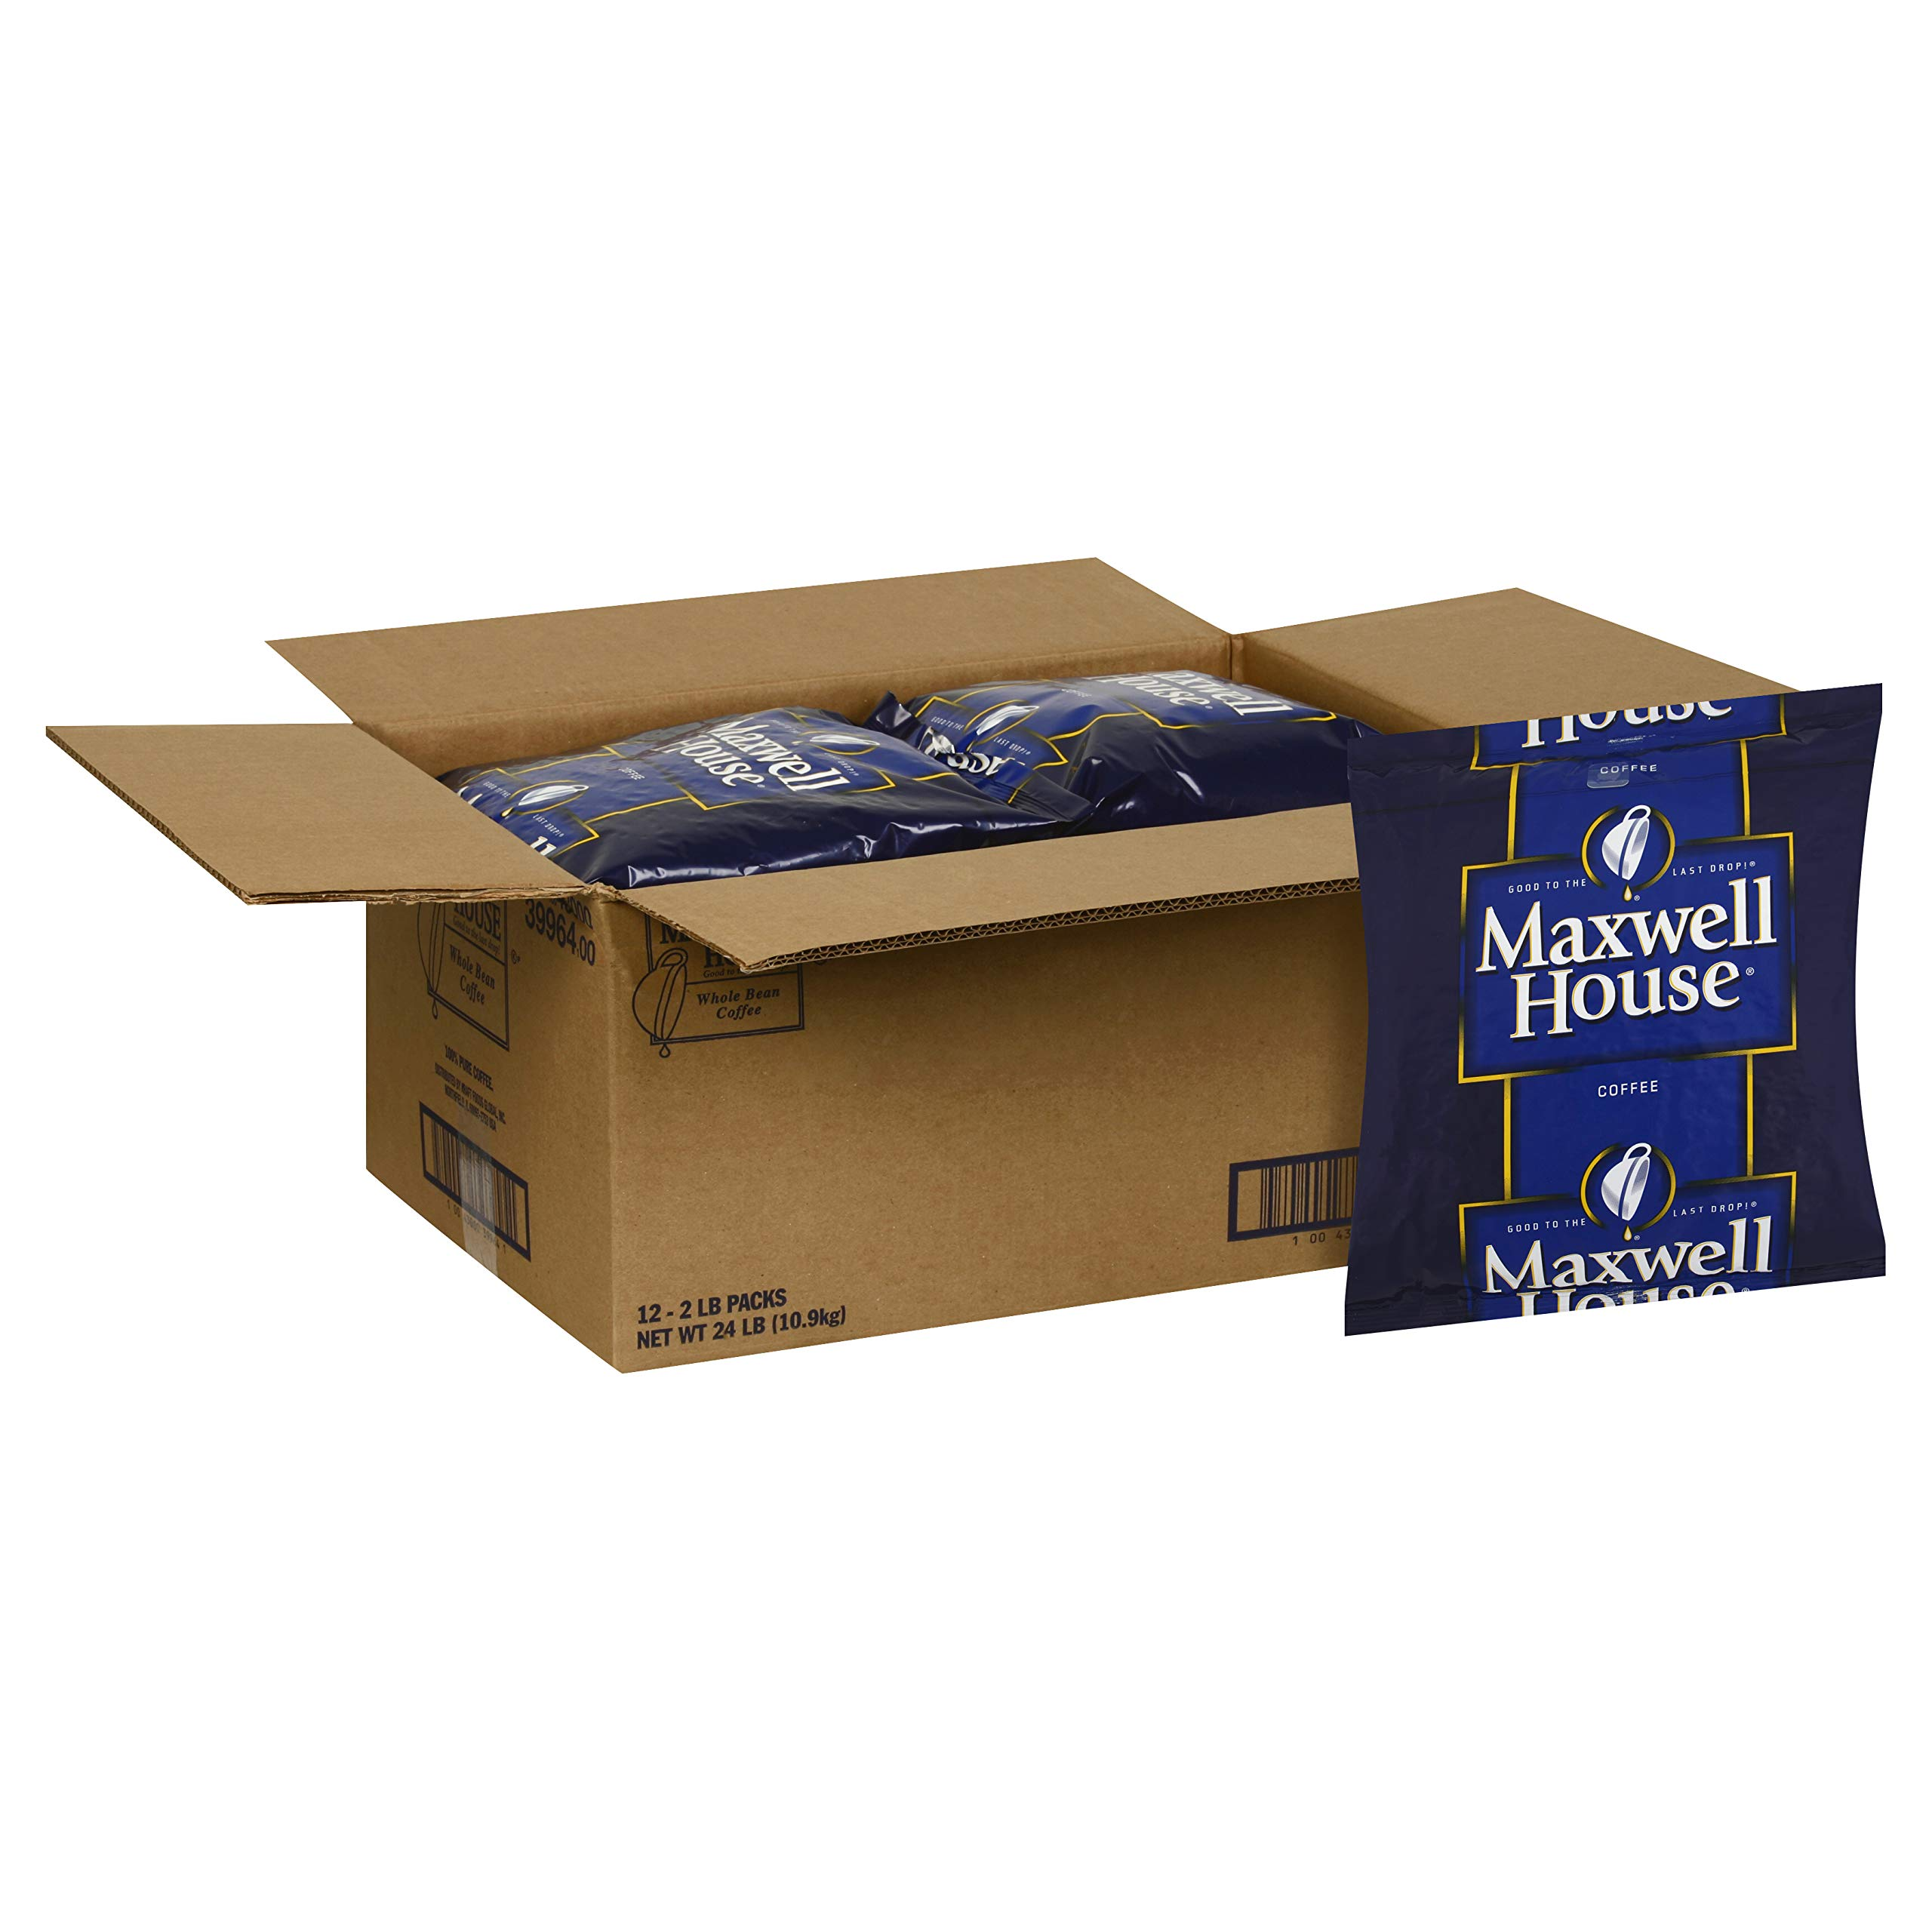 Maxwell House Shy Roast Vending Coffee, Whole Bean, 2 lb. pack, Pack of 12